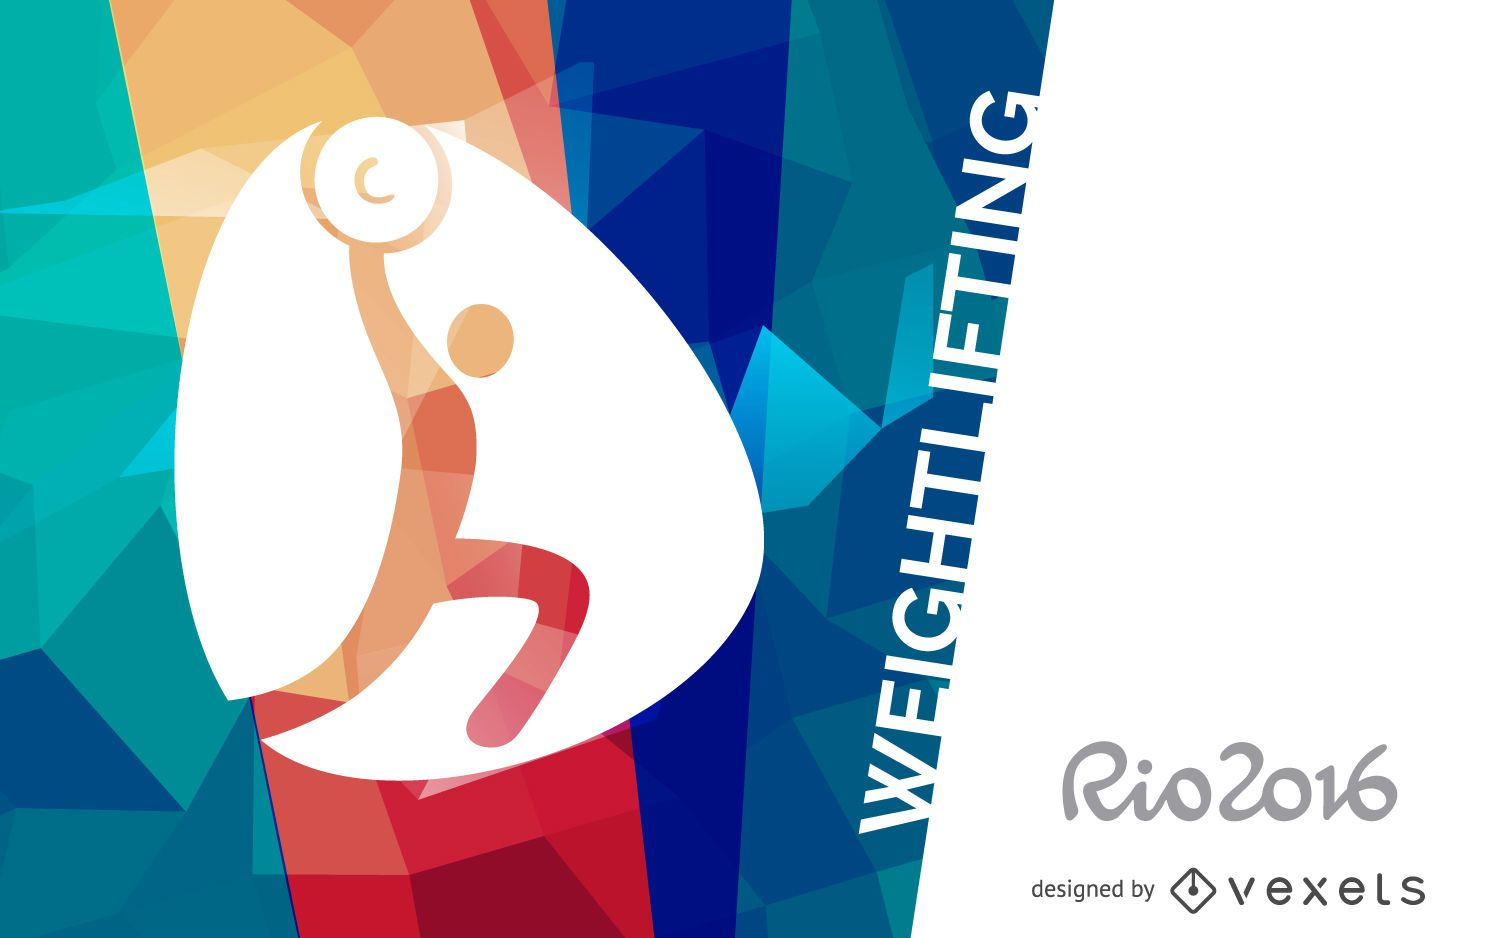 Rio 2016 weightlifting banner